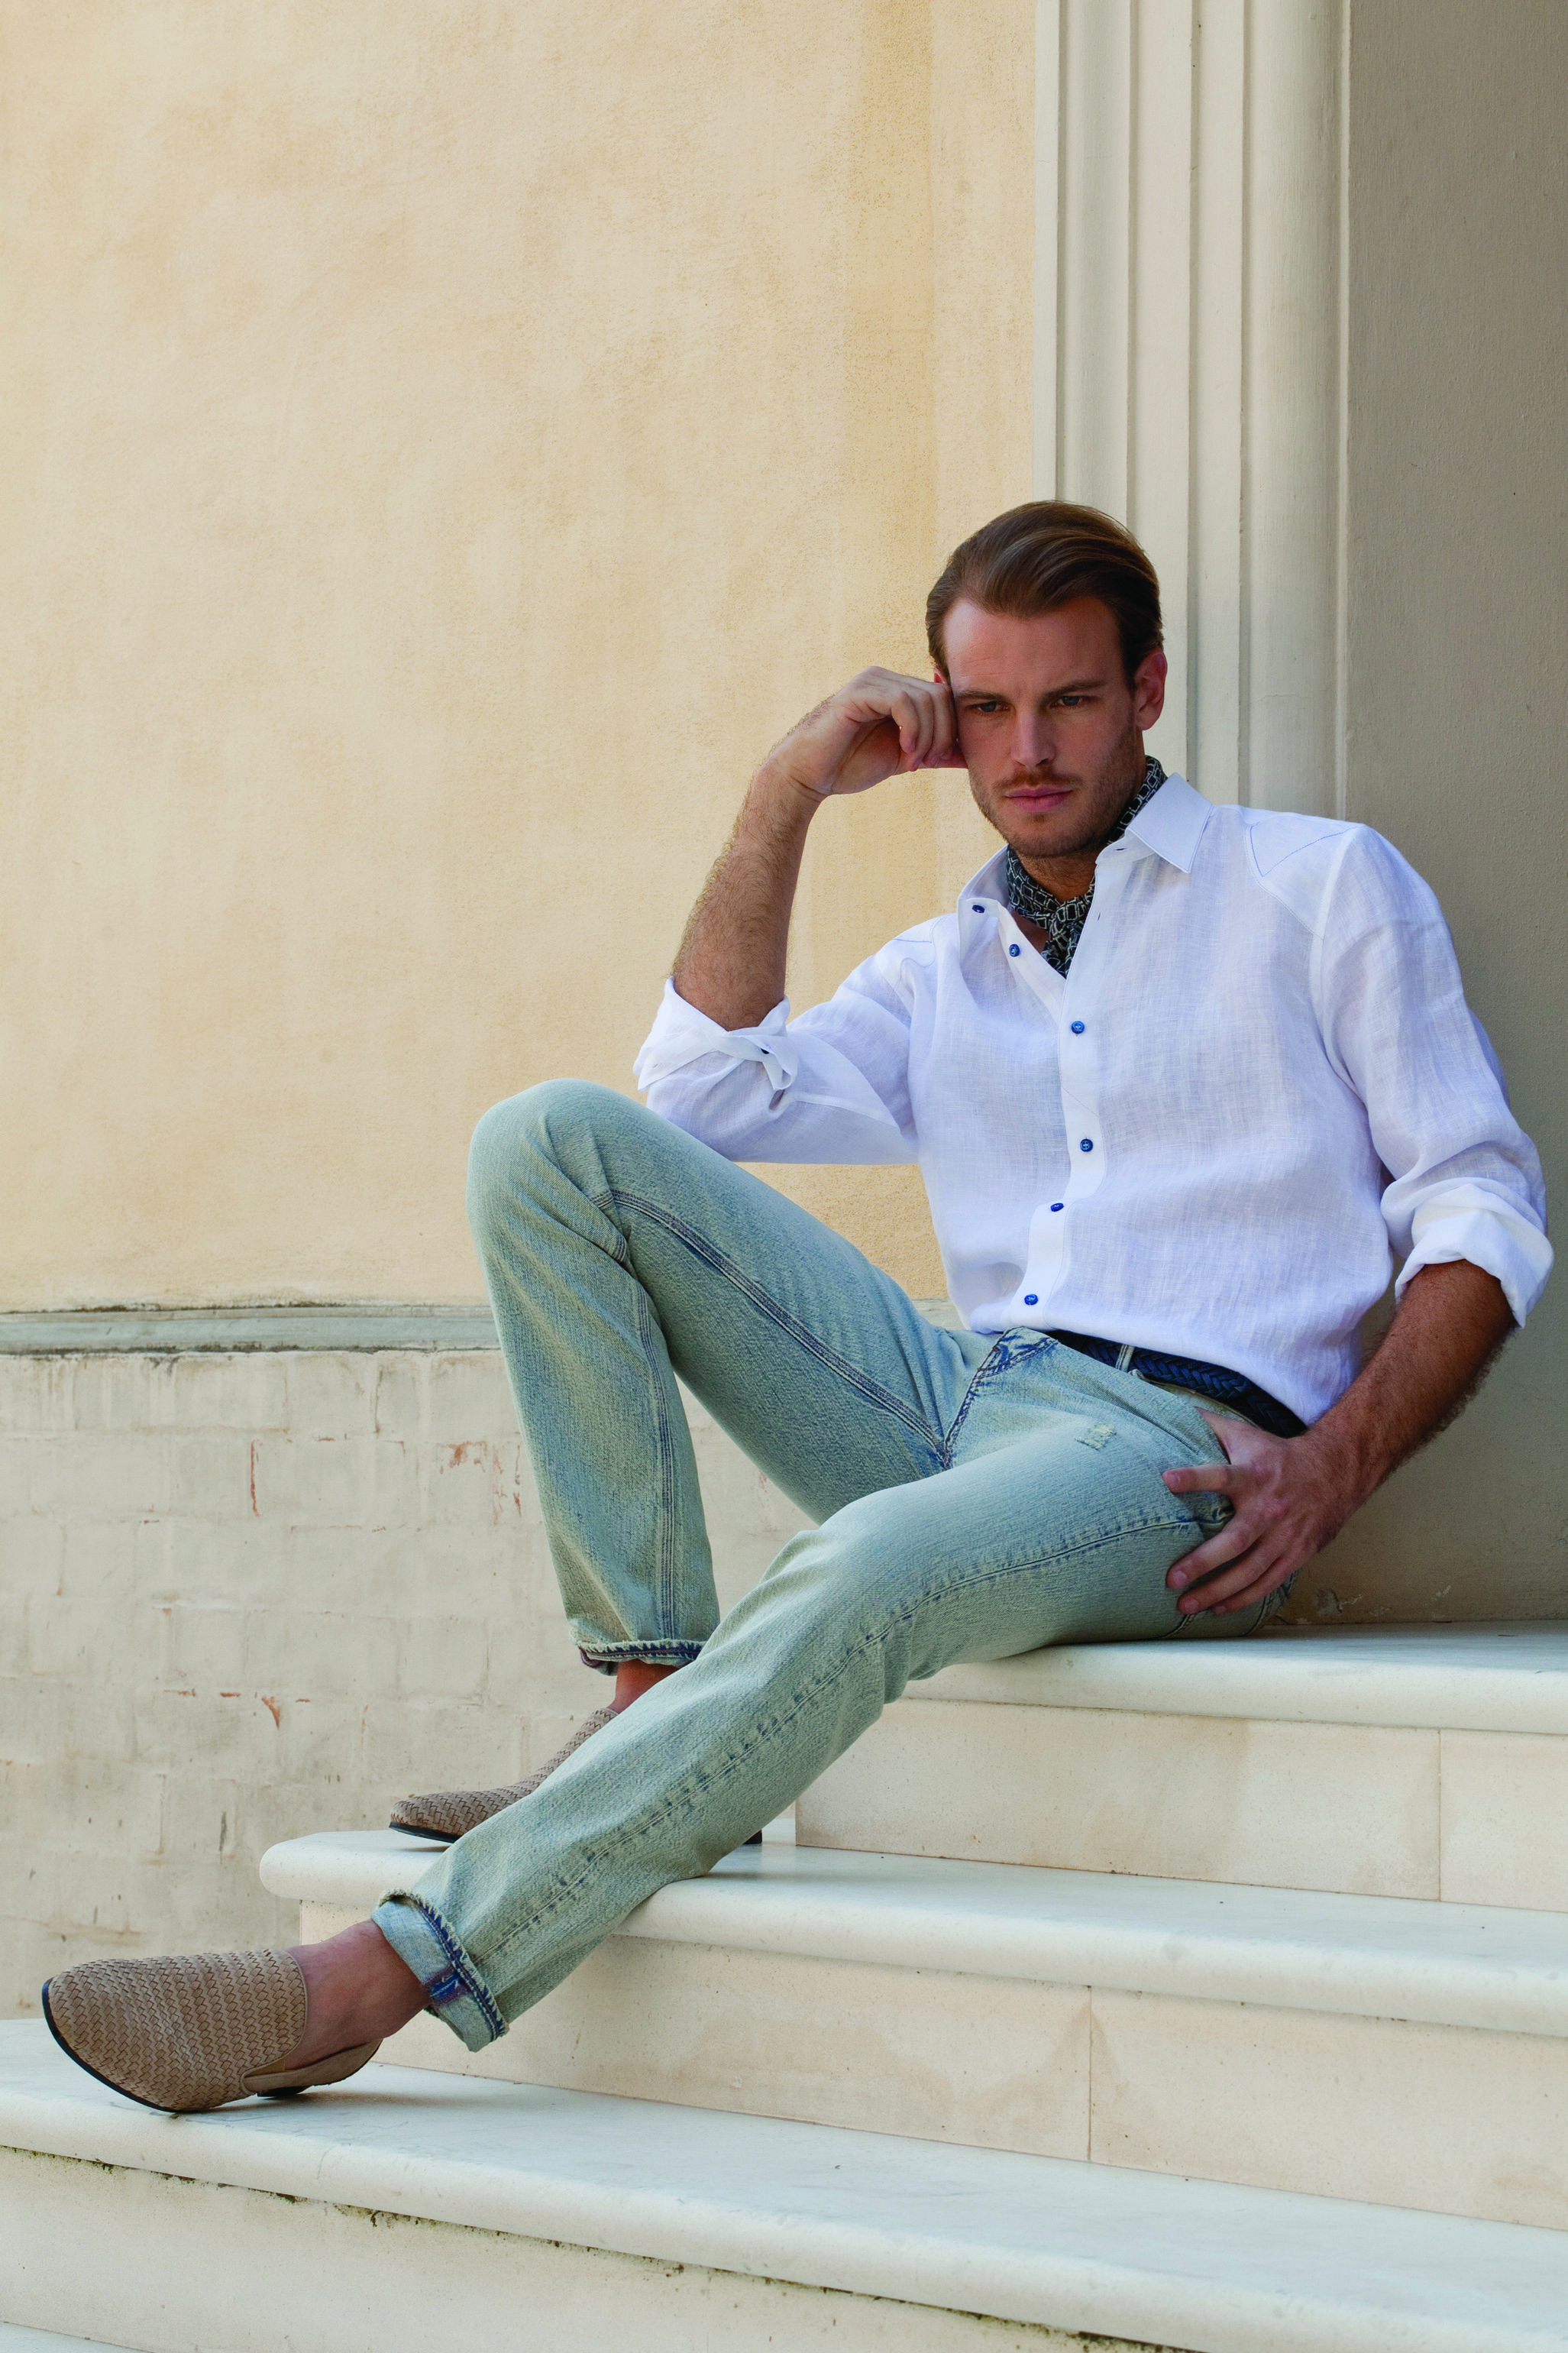 Messori Spring Summer 2013 (shot at Casa Messori in Castelvetro, Italy) www.messori.it  #spring #summer #menswear